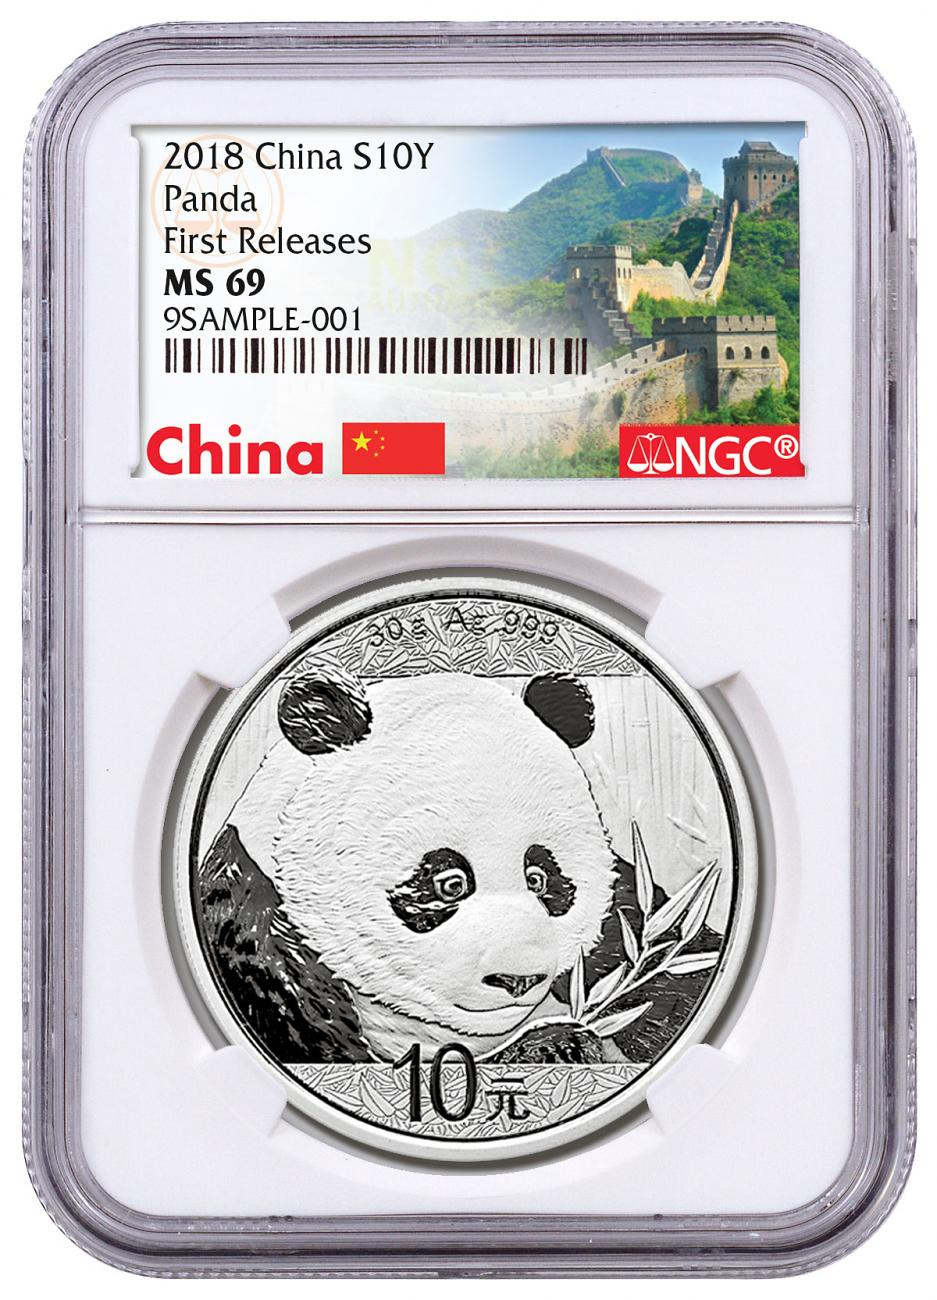 2018 China 30 g Silver Panda - 35th Anniversary ¥10 Coin NGC MS69 FR Exclusive Great Wall Label